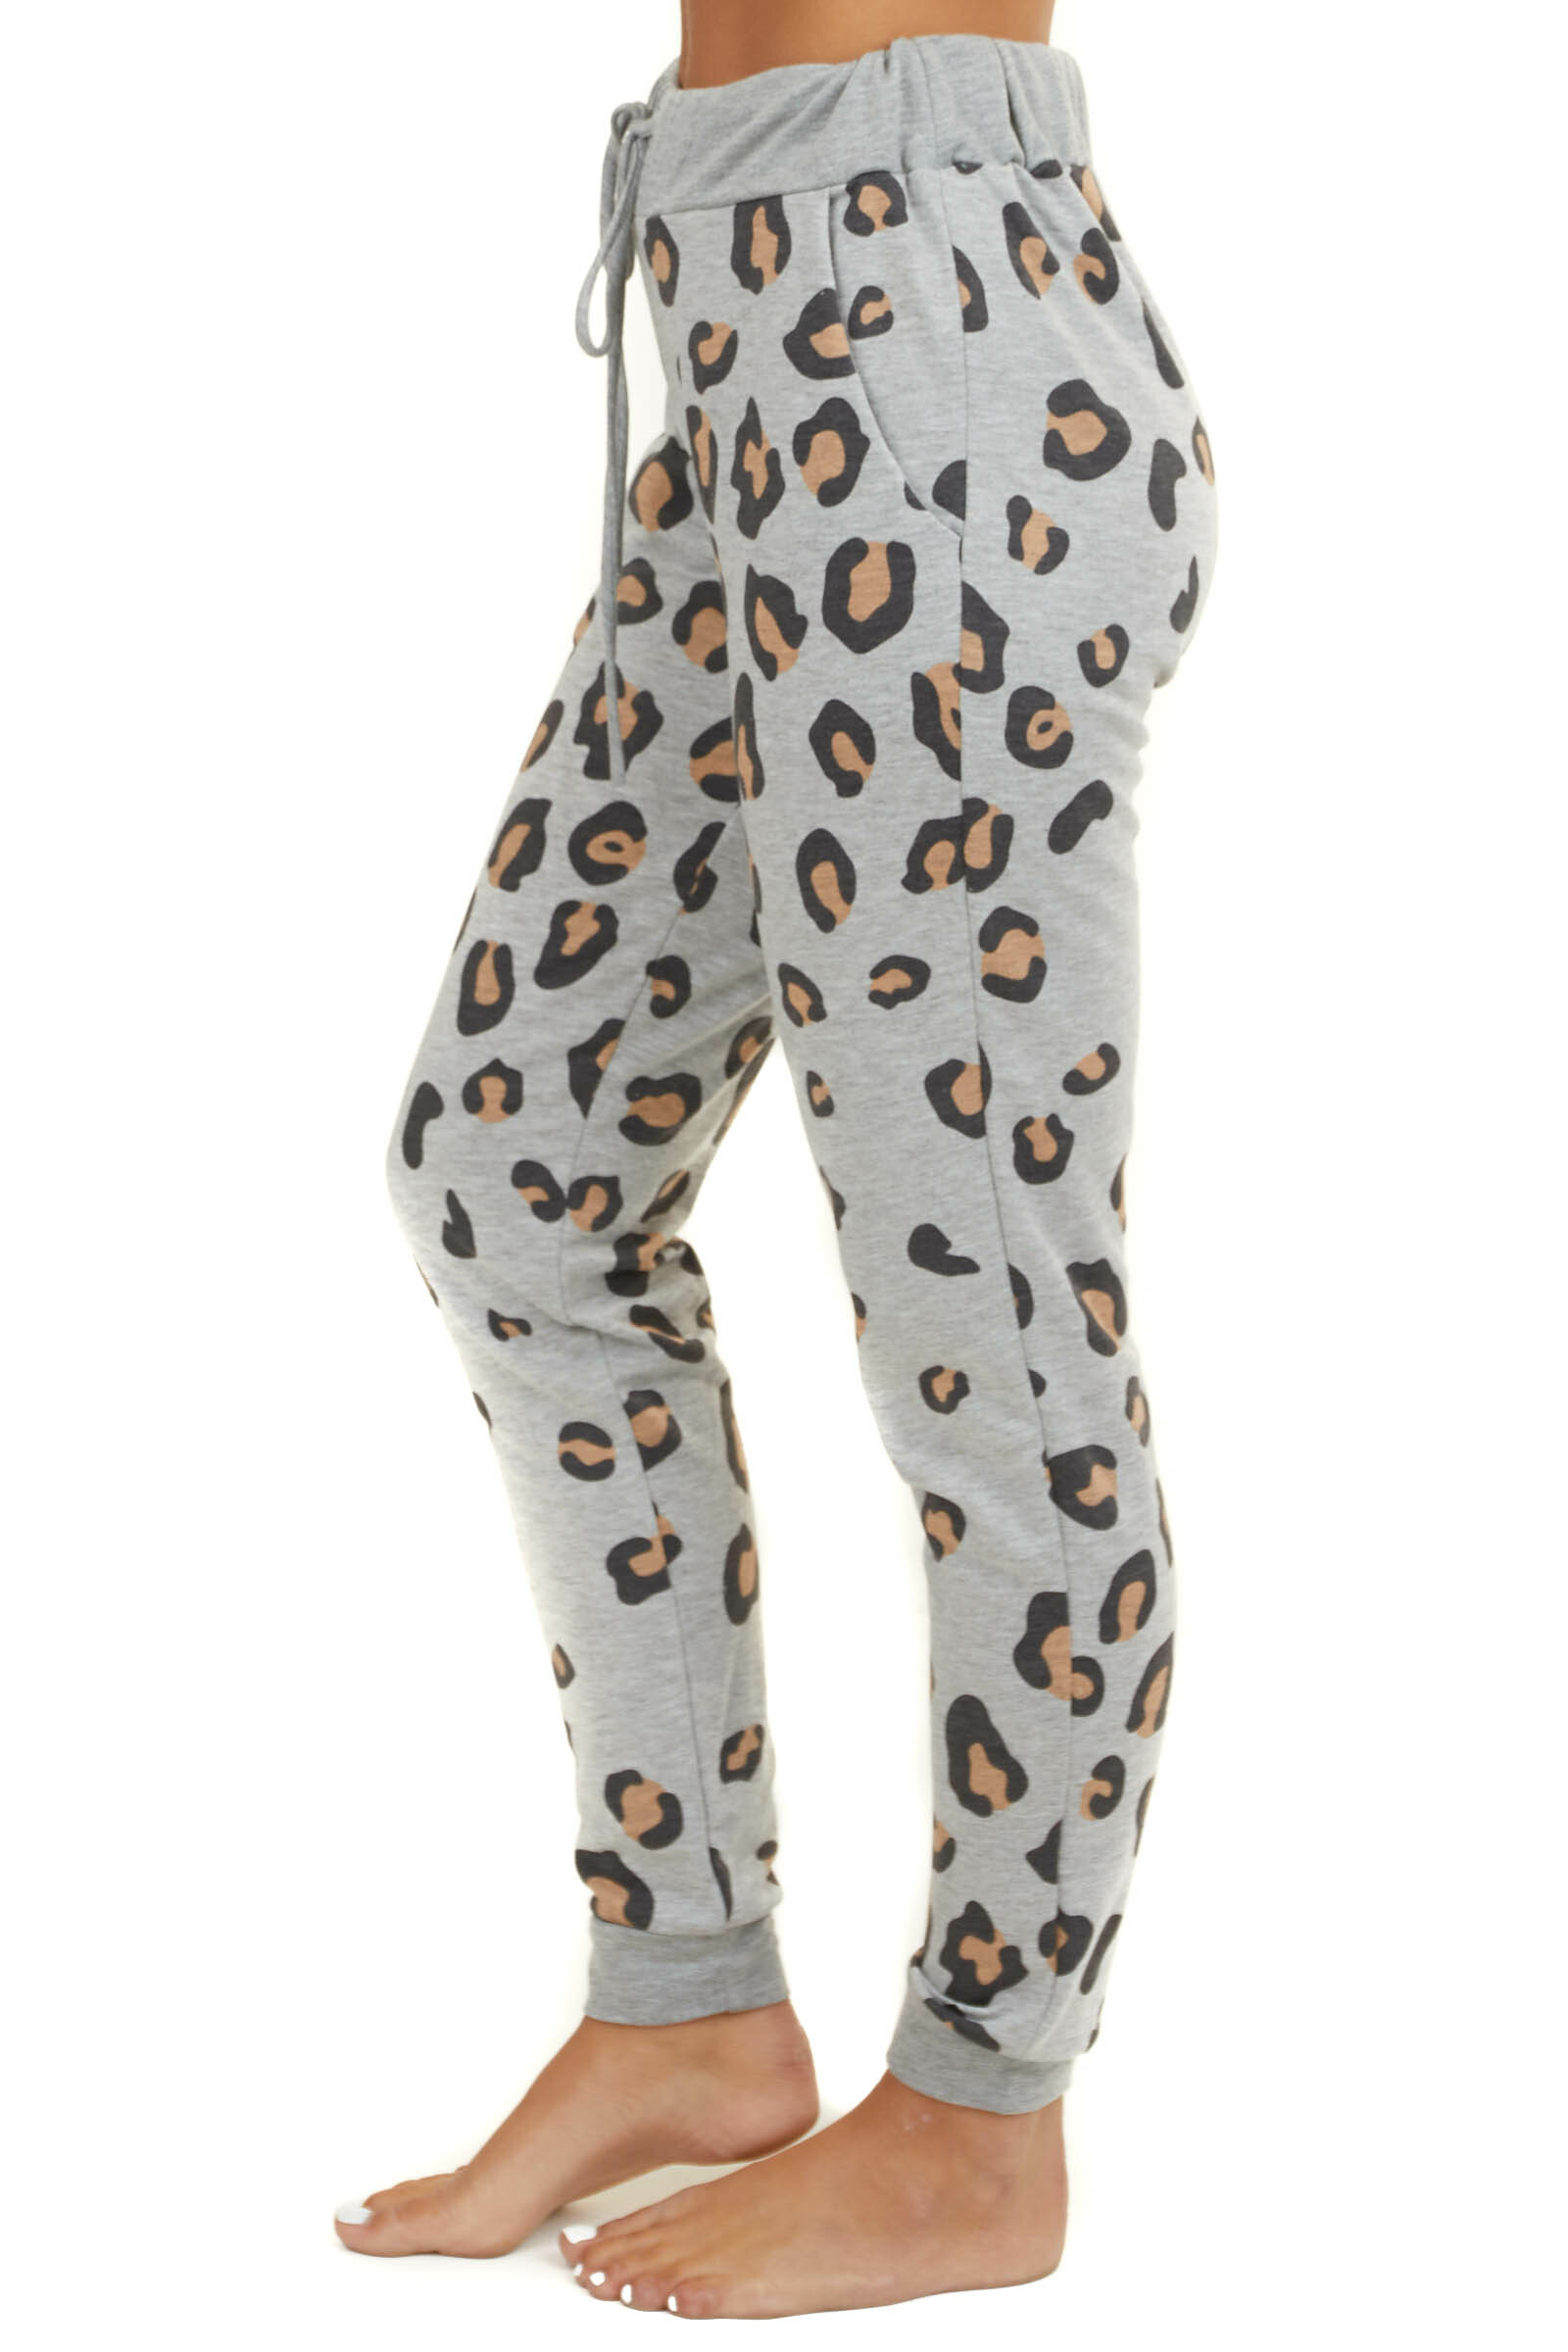 Heather Grey Leopard Knit Joggers with Pockets and Waist Tie